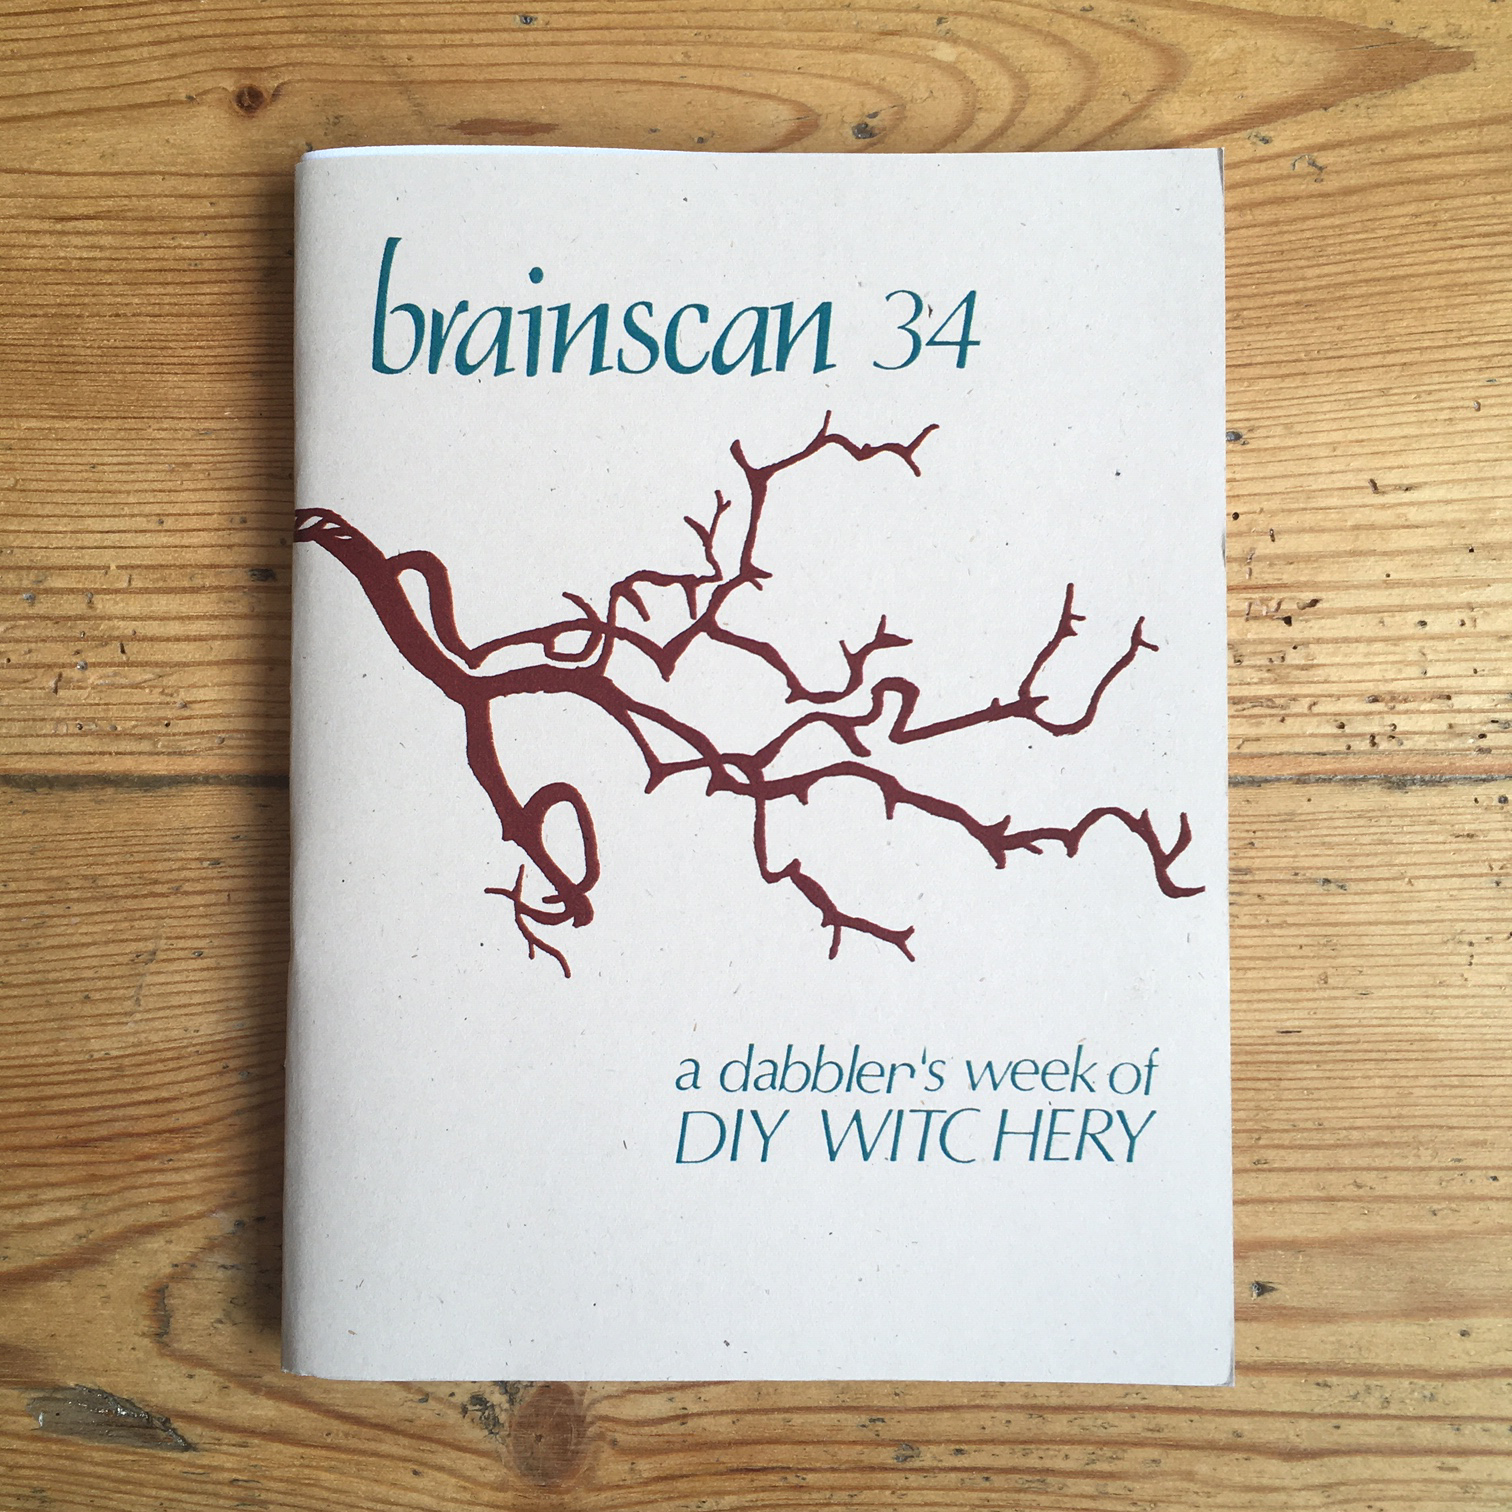 Brainscan: DIY Witchery issues #33 & #34